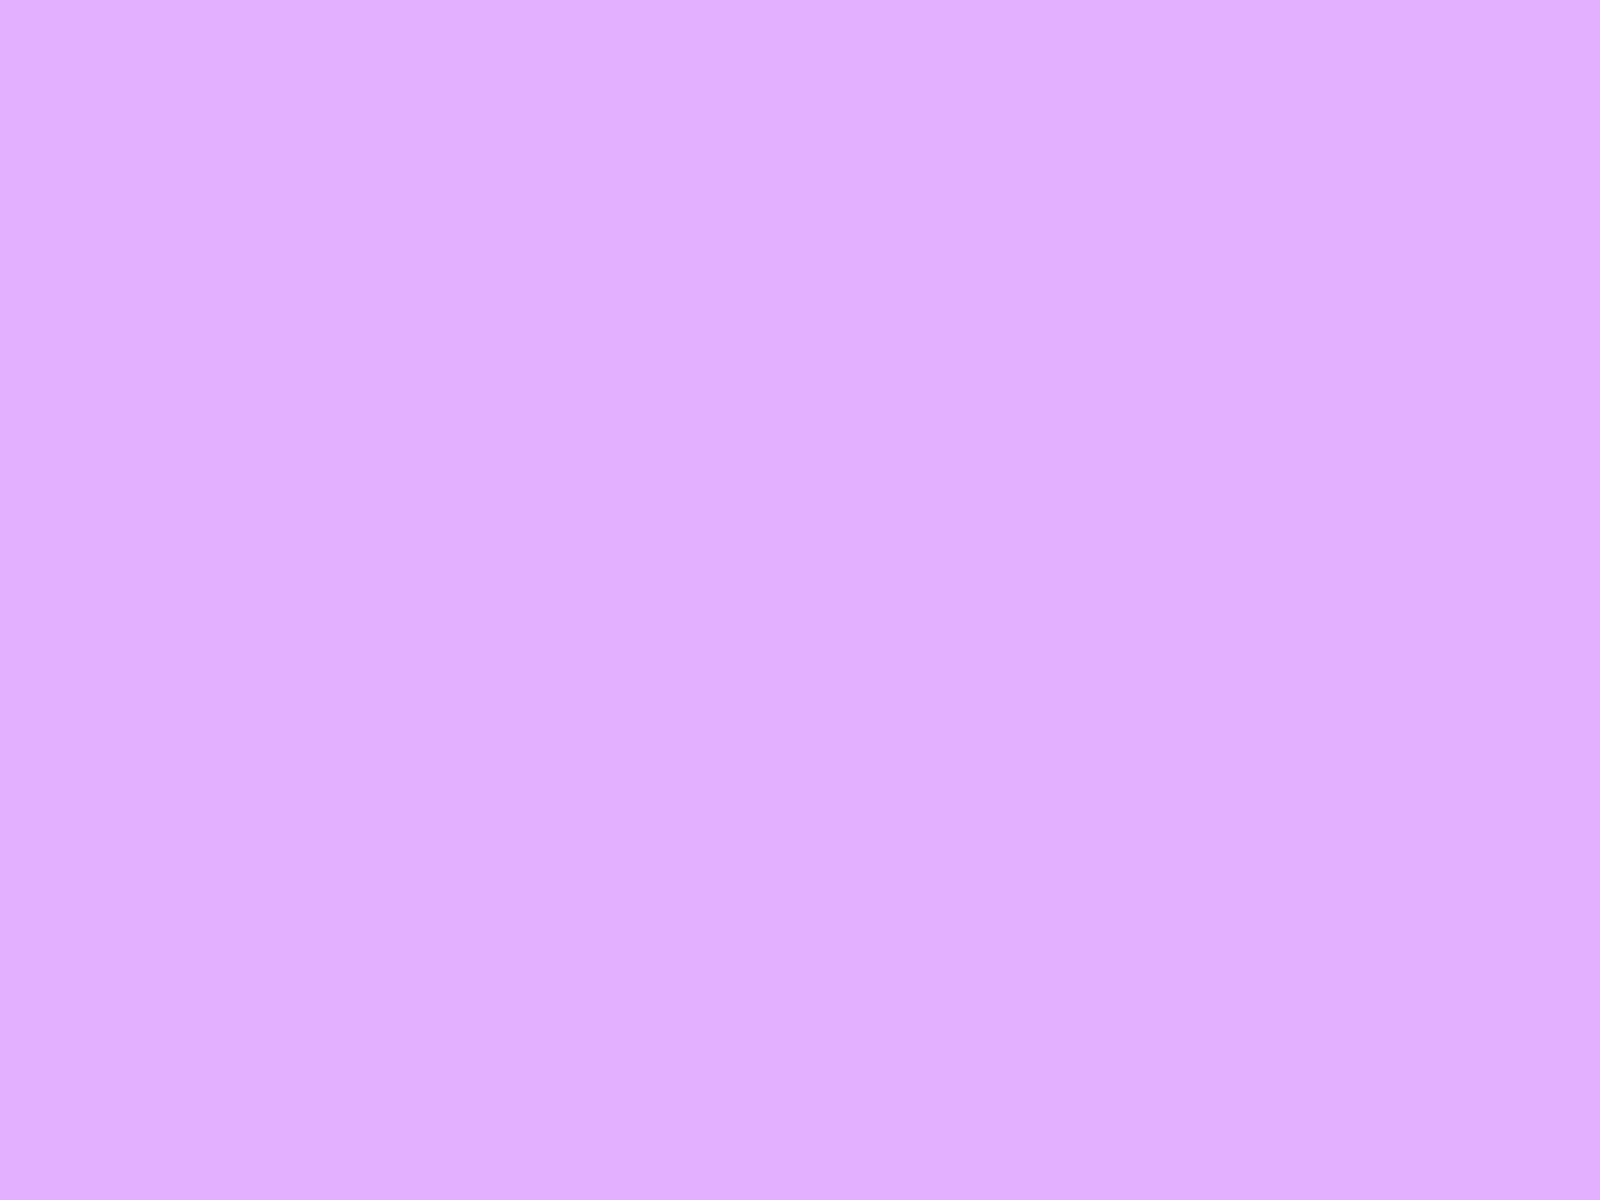 1600x1200 Mauve Solid Color Background